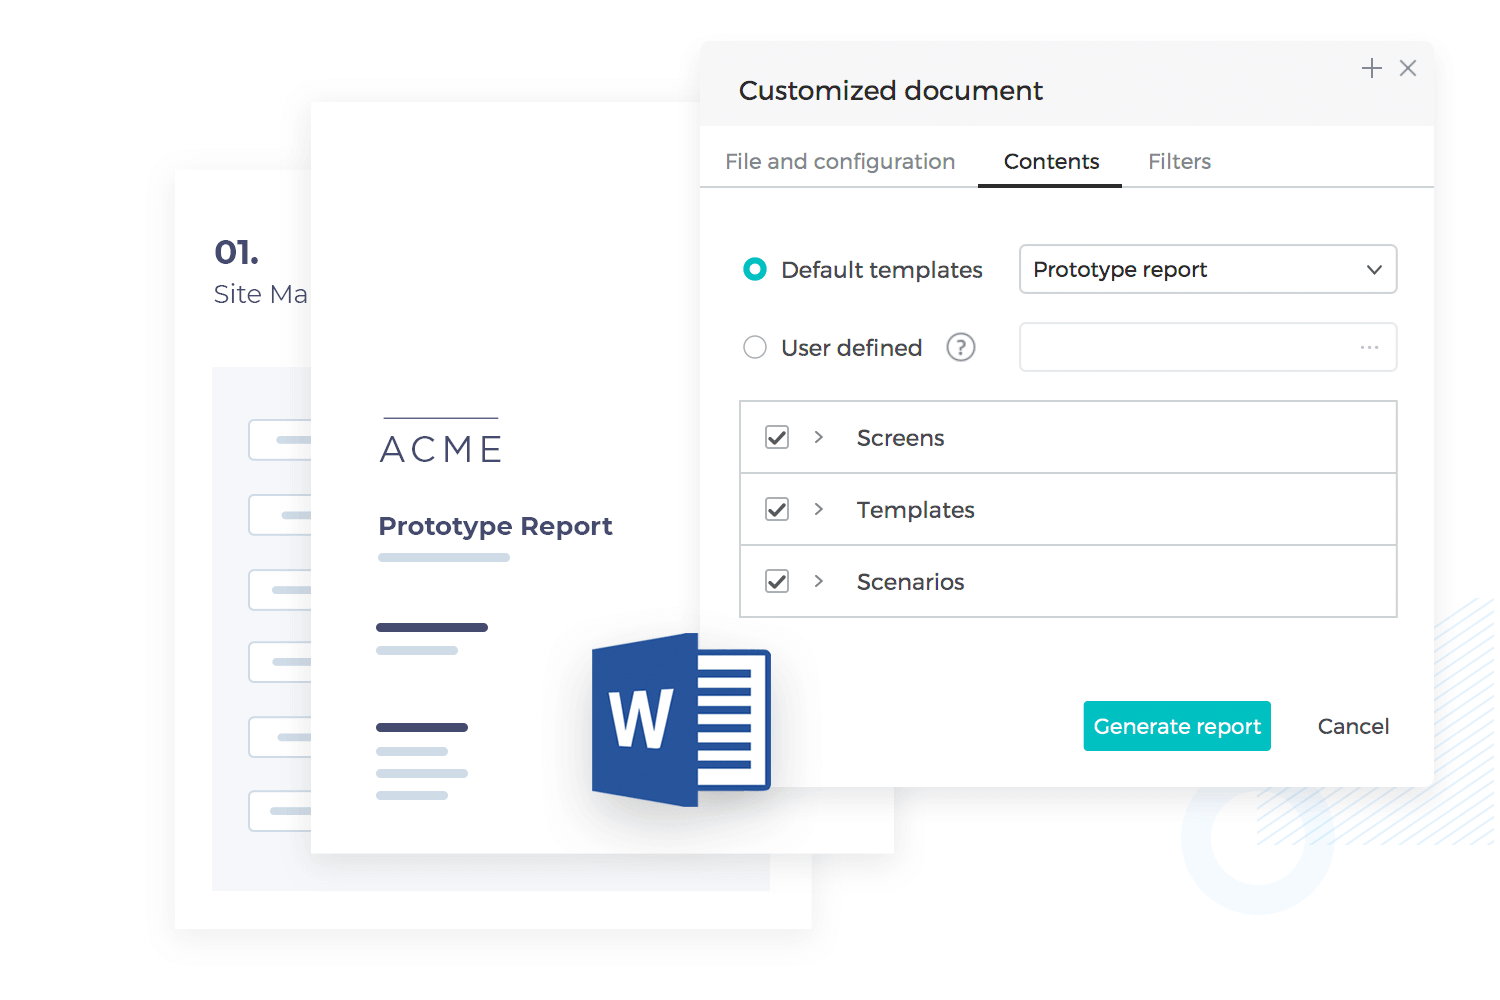 Generate UI and functional requirements document